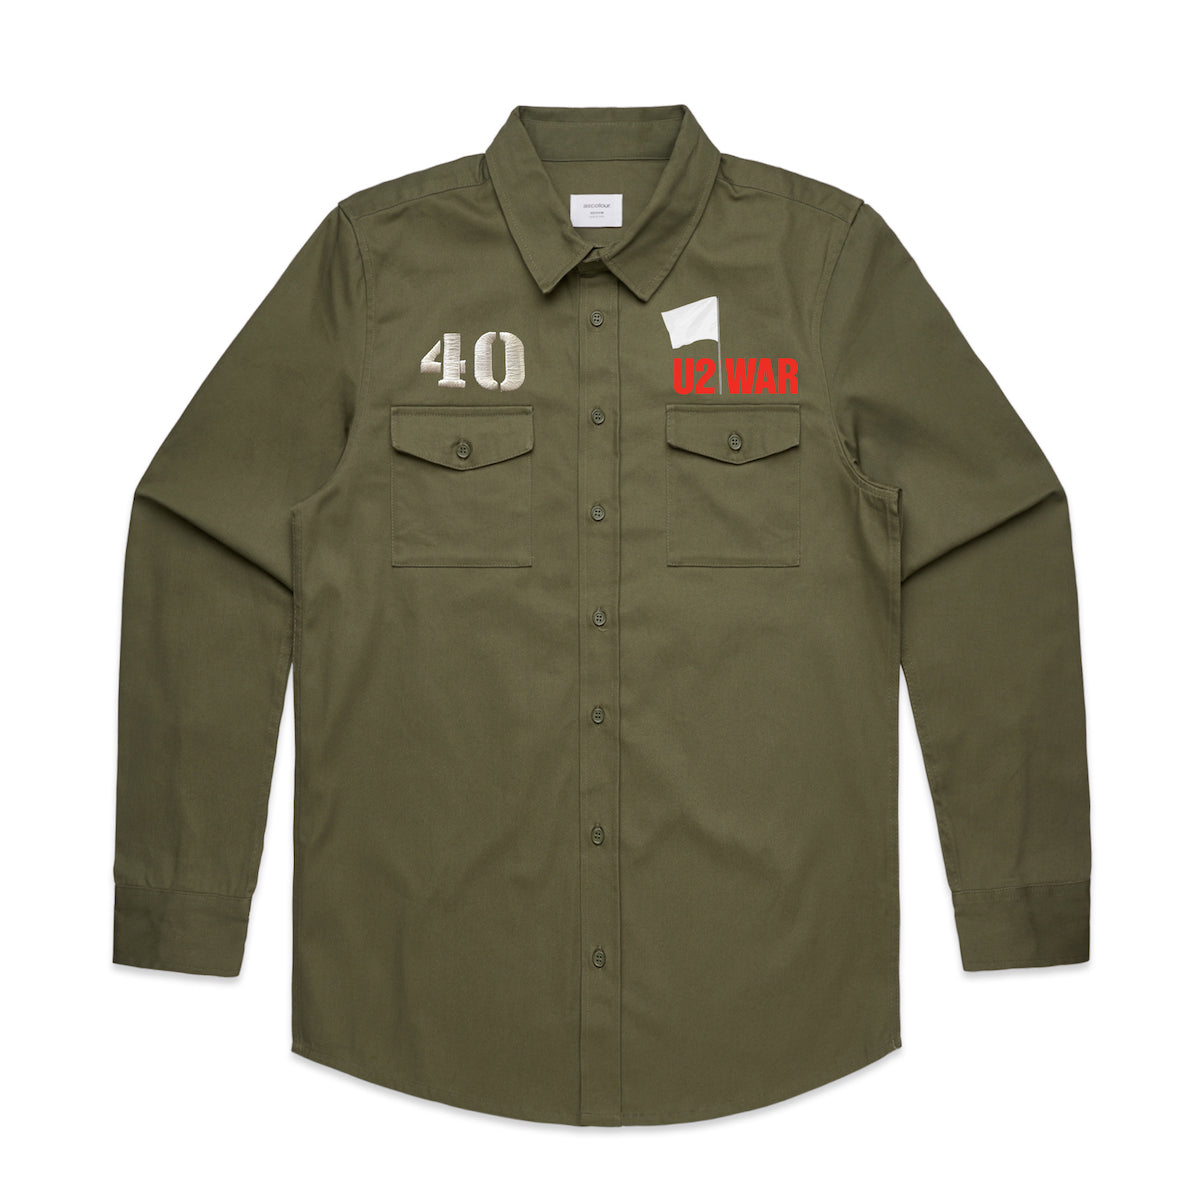 WAR Military Style Shirt